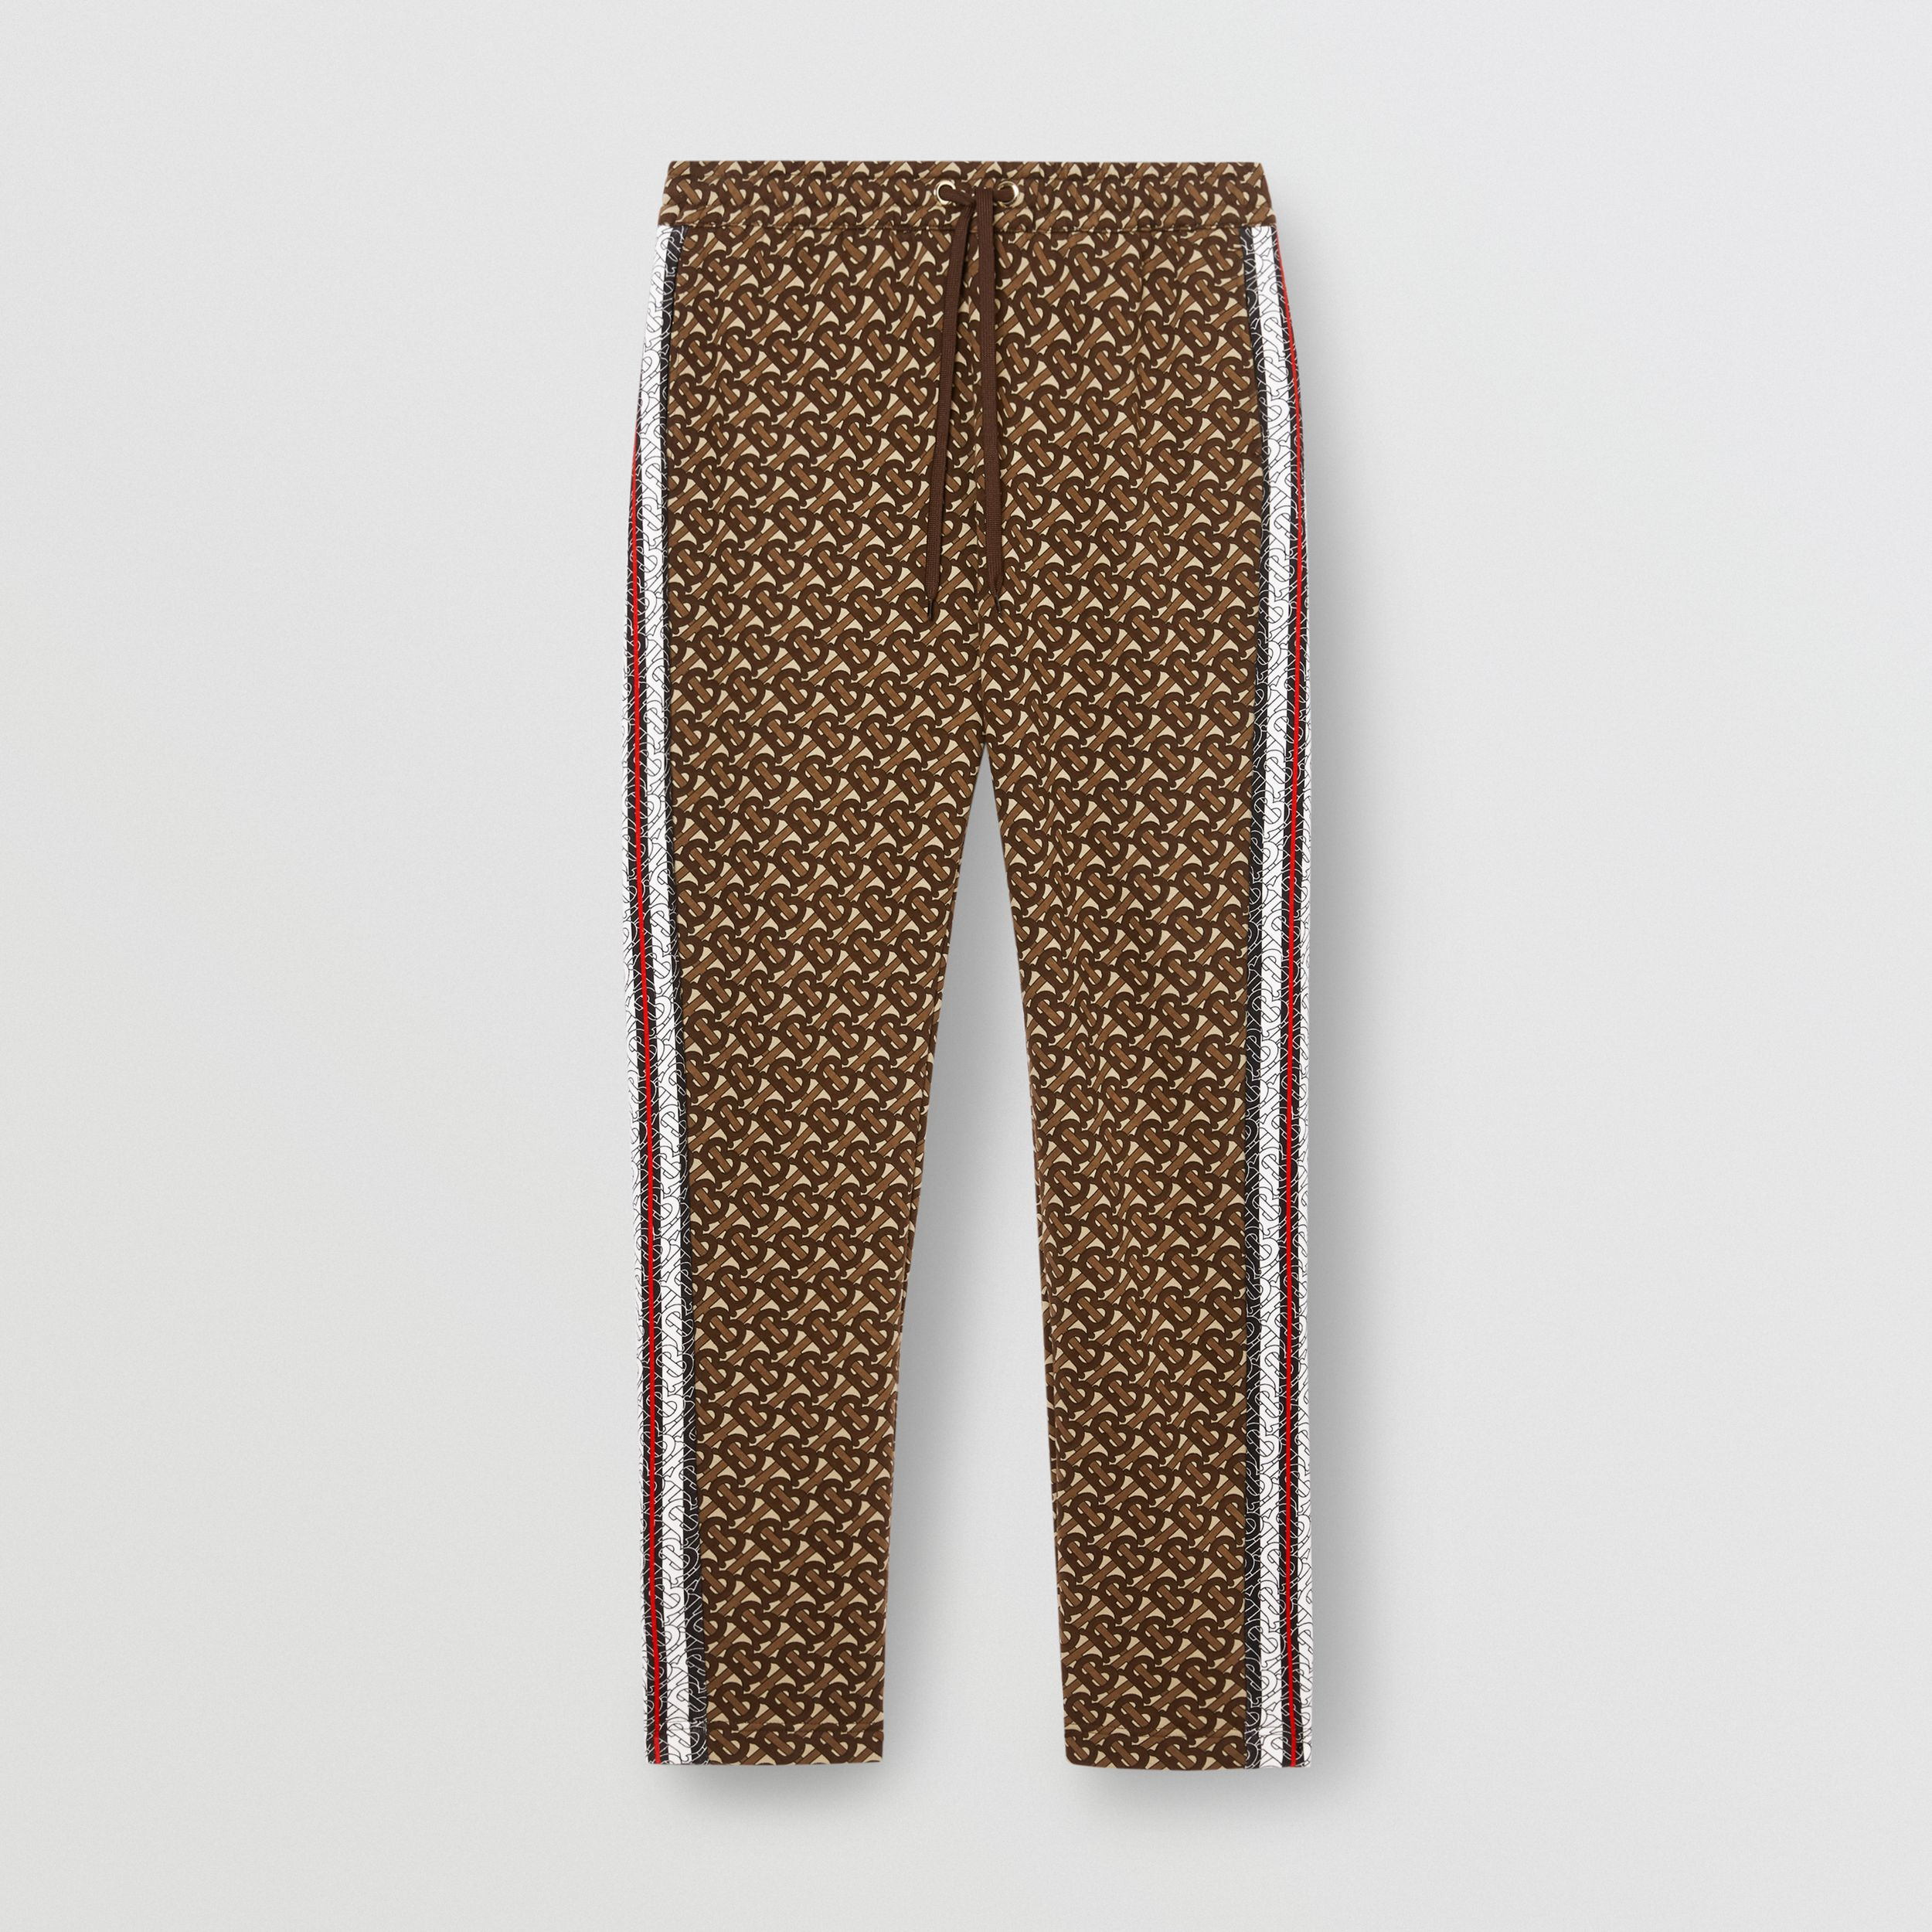 Monogram Stripe Print Cotton Jogging Pants in Bridle Brown - Men | Burberry Australia - 4